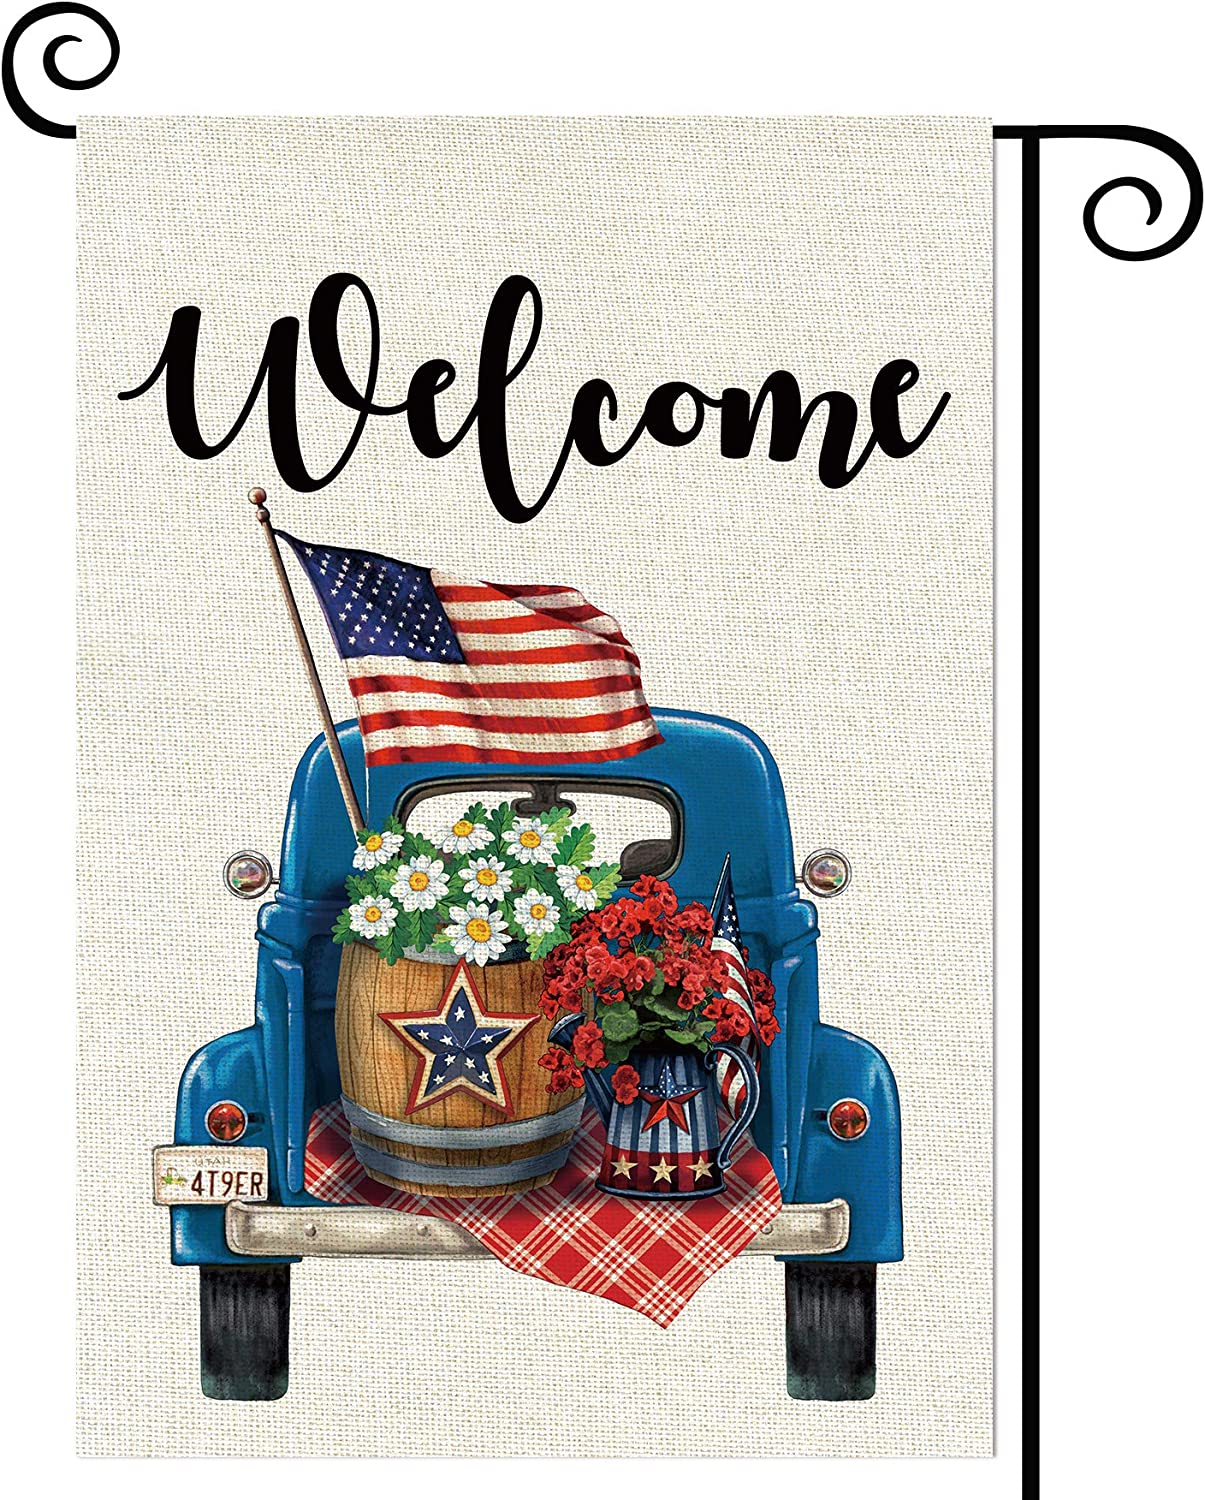 Balgardekor Welcome Patriotic Blue Truck Garden Flag Vertical Double Sided Burlap 4th of July Summer Yard Outdoor Decor Home Decor (12.5 x 18, US Flag)